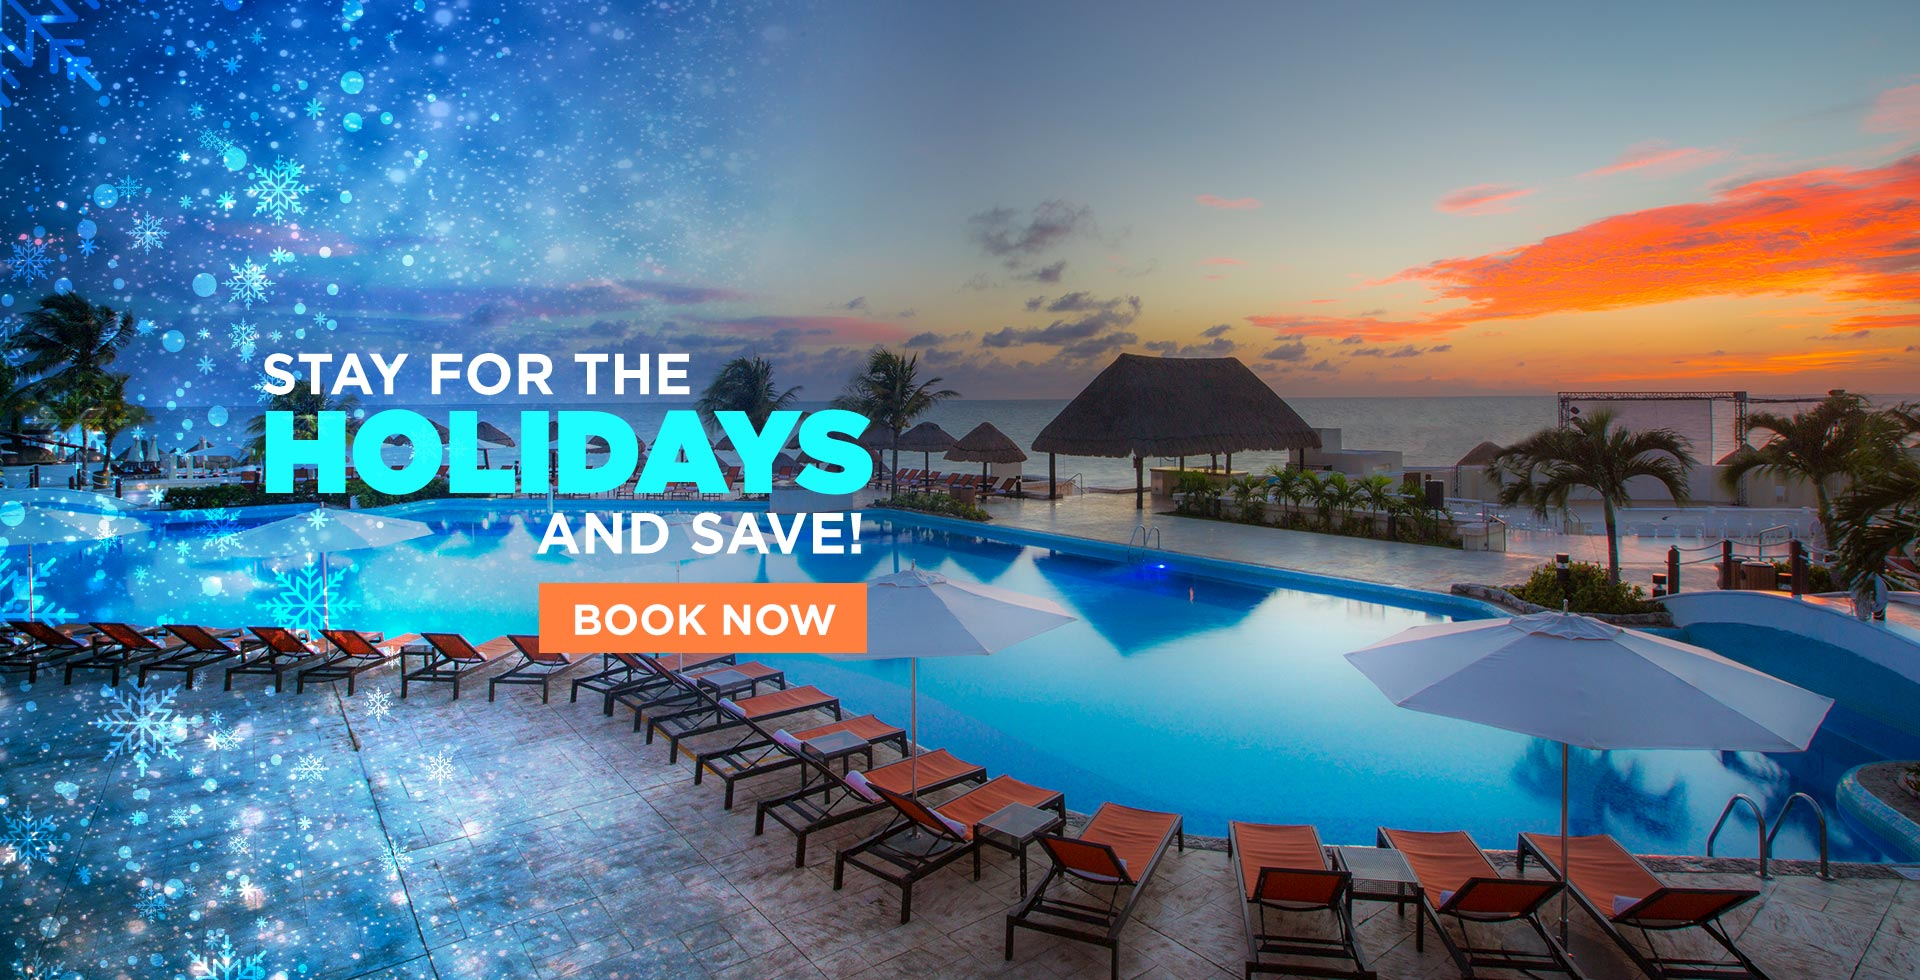 Stay For The Holidays and Save!